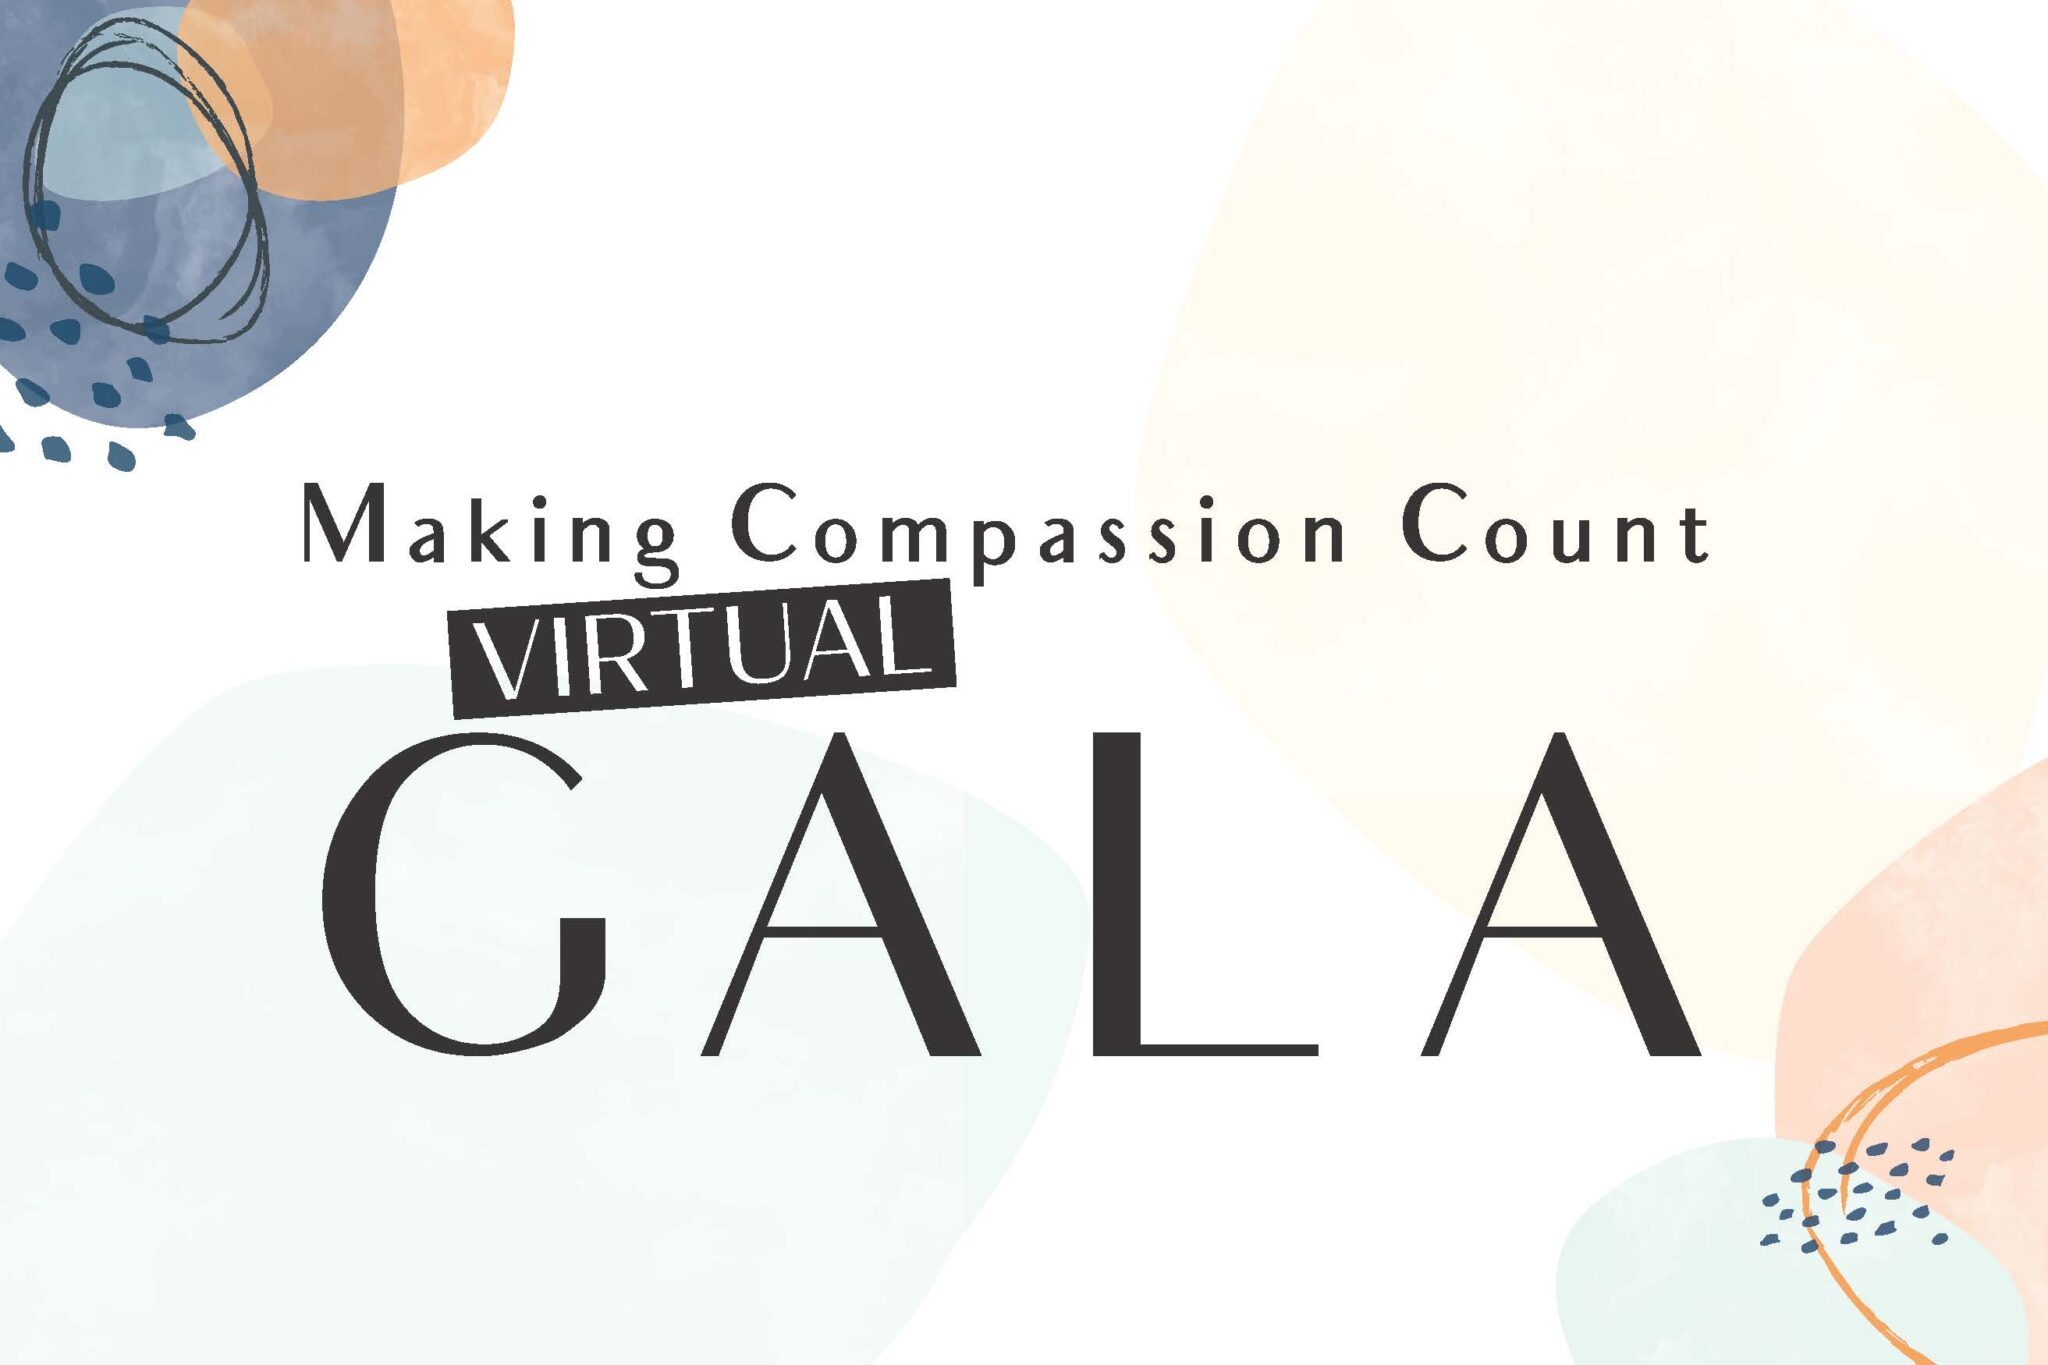 Making Compassion Count Virtual Gala